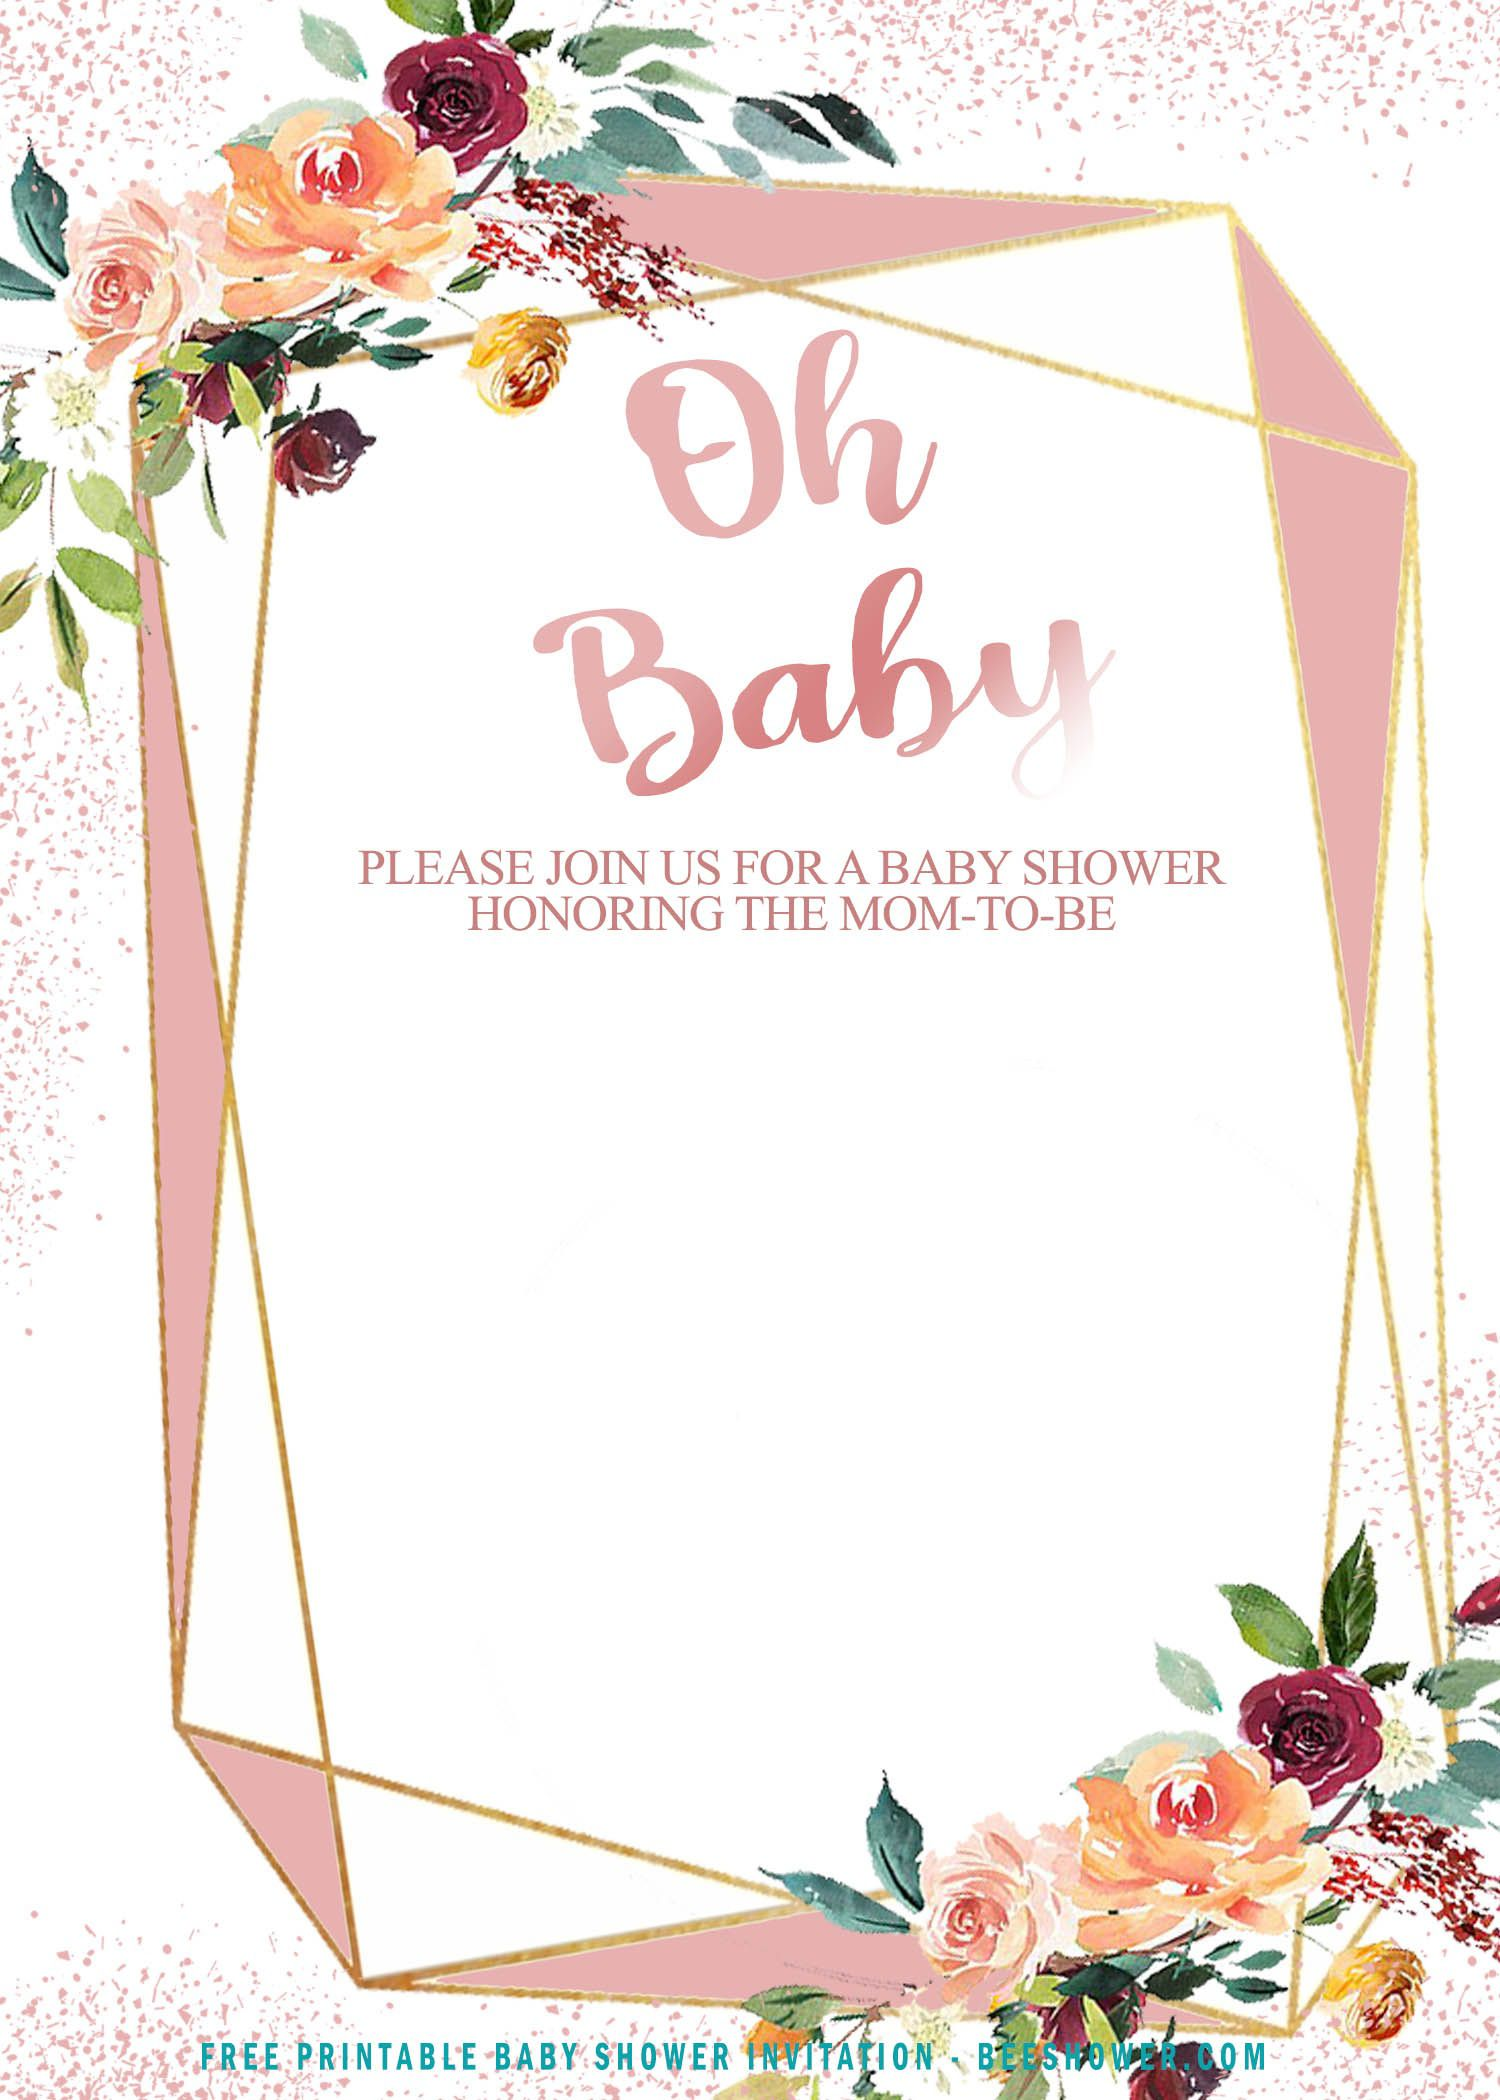 008 Beautiful Baby Shower Invite Template Word Highest Clarity  Invitation Wording Sample Free ExampleFull